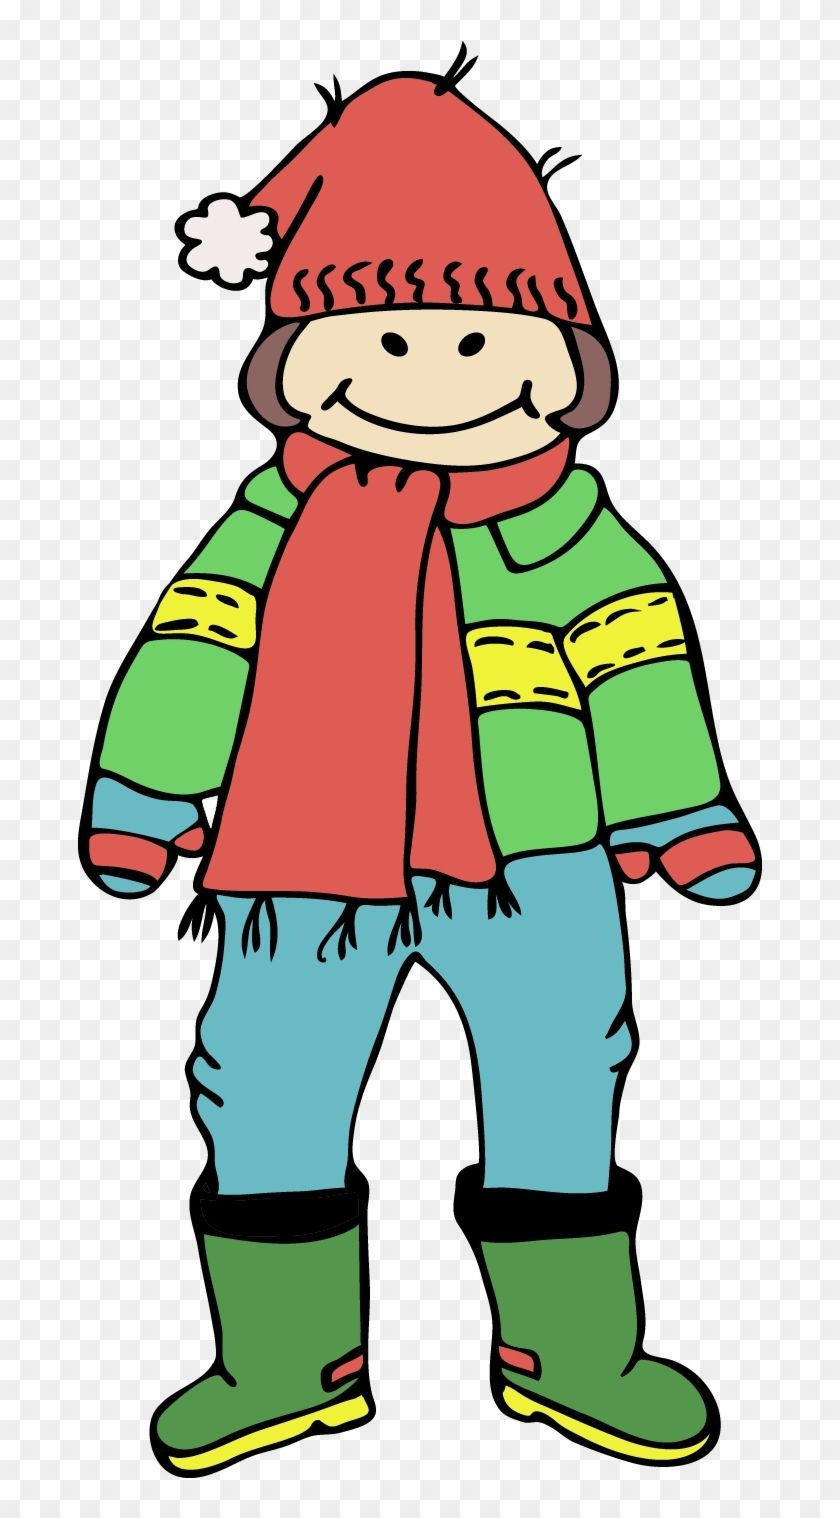 Winter Clothes Clipart Ideas In 2021 Winter Outfits Winter Outfits Warm Clothes Clips